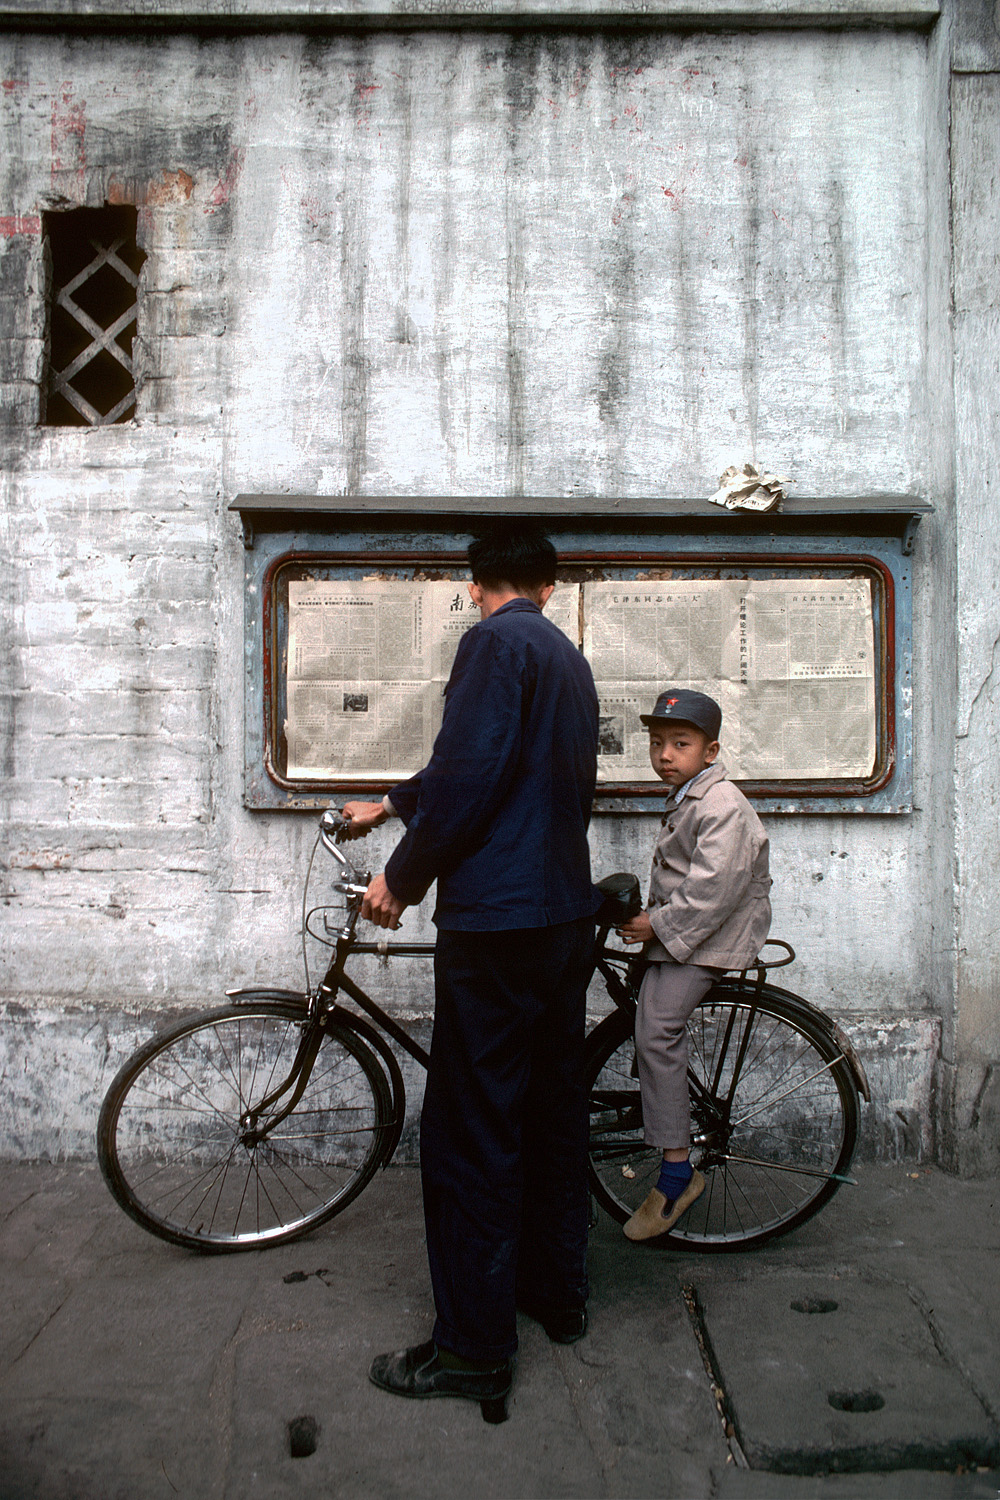 bicycleboy Daily News, Guangzhou, China, 1979